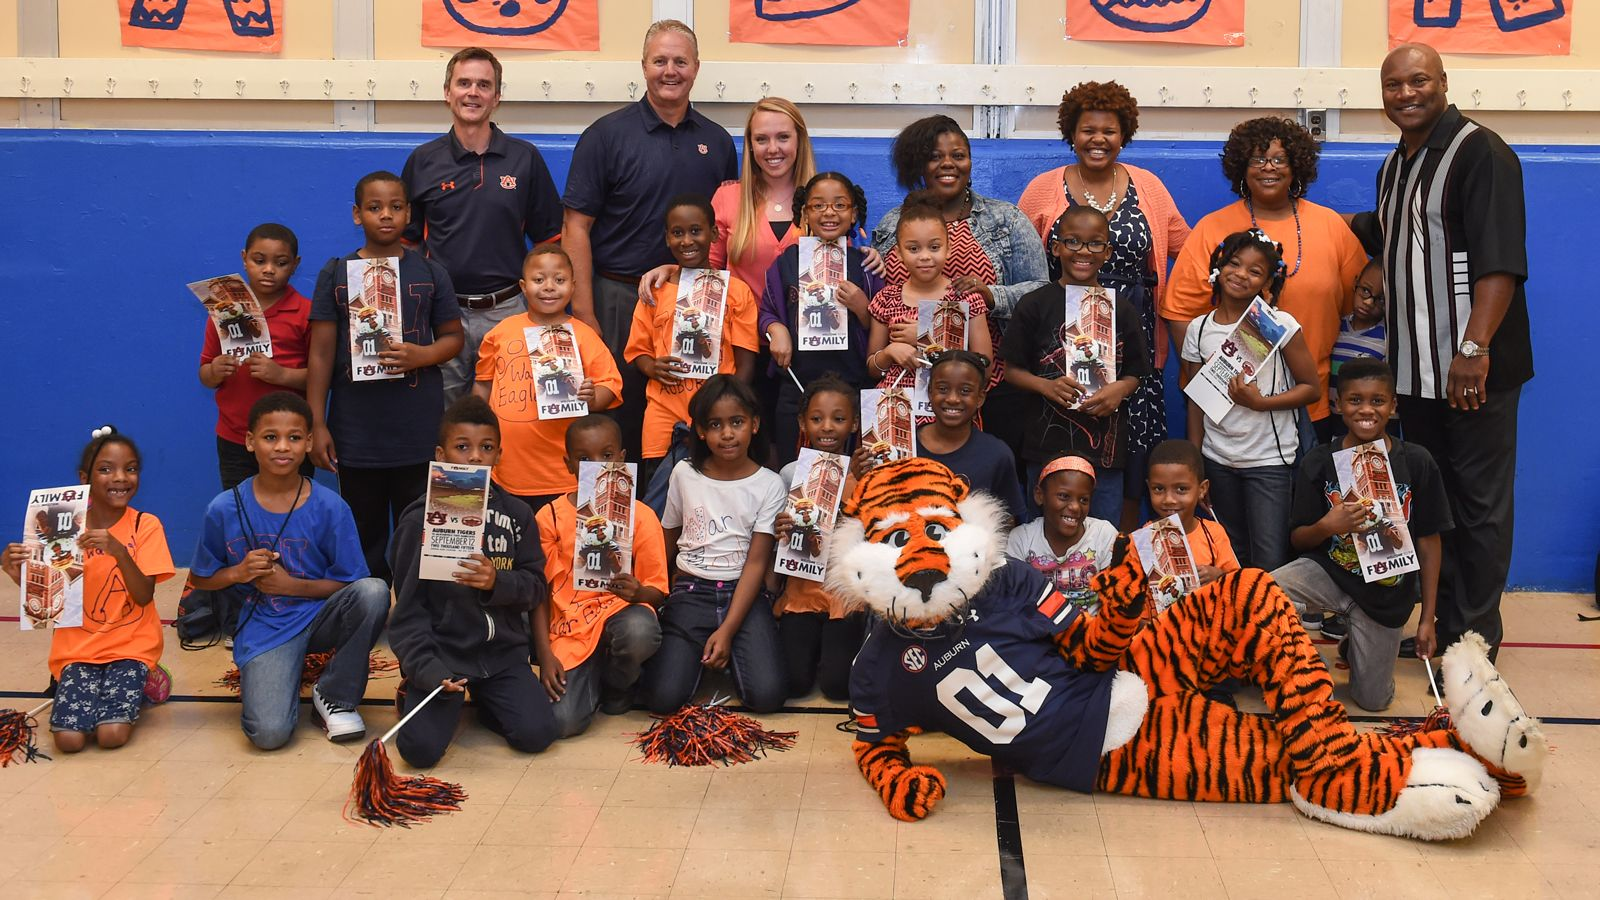 Auburn embraces Chicago elementary school